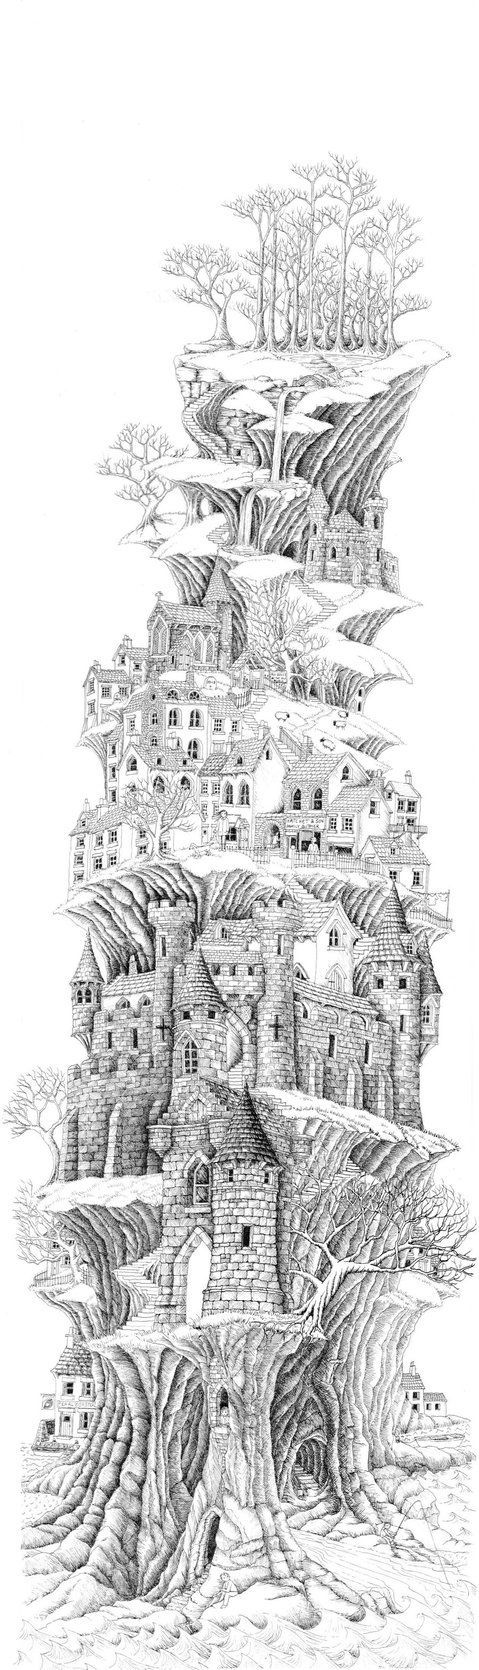 Incredible Coloring Page Perfect For Adults One Of The Most Elaborate And Detailed Pictures I